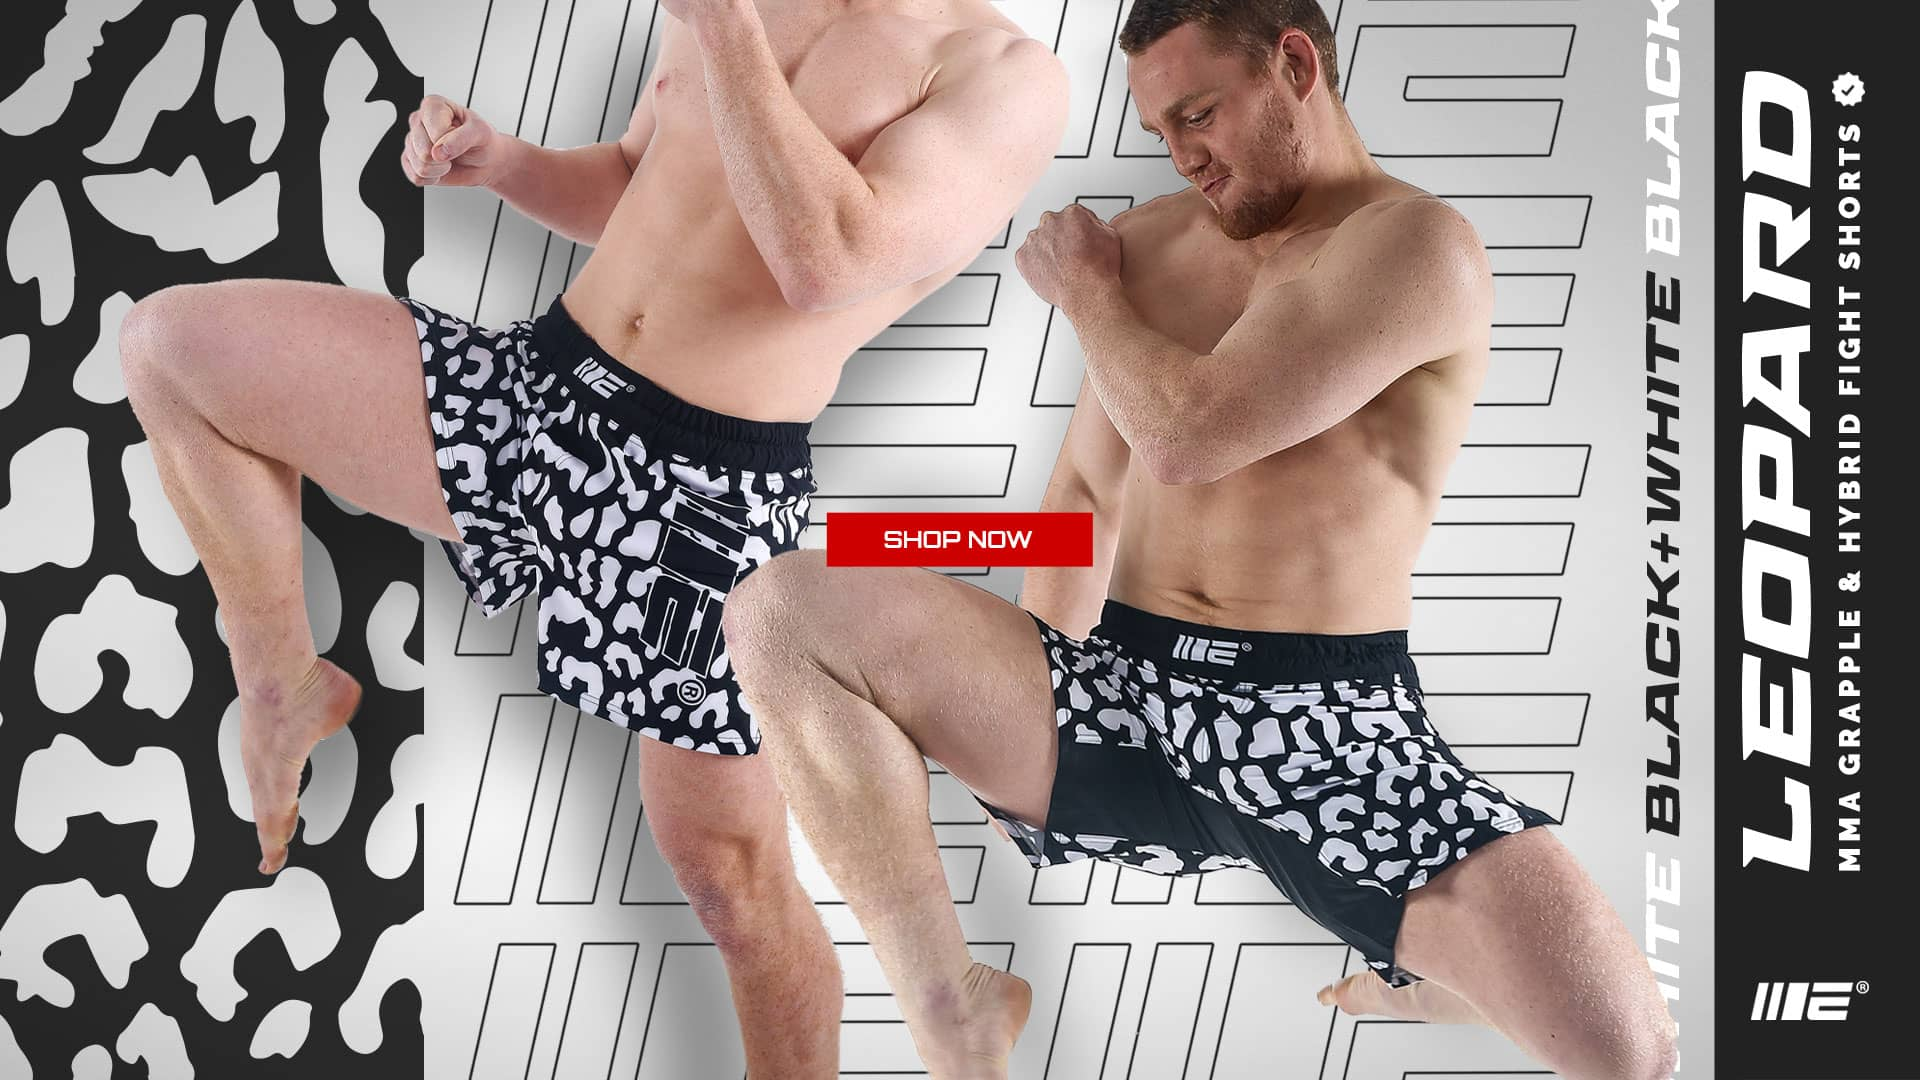 Jack Della Wearing Engage Leopard MMA Grappling and Hybrid Fight Shorts, High quality MMA Fight wear